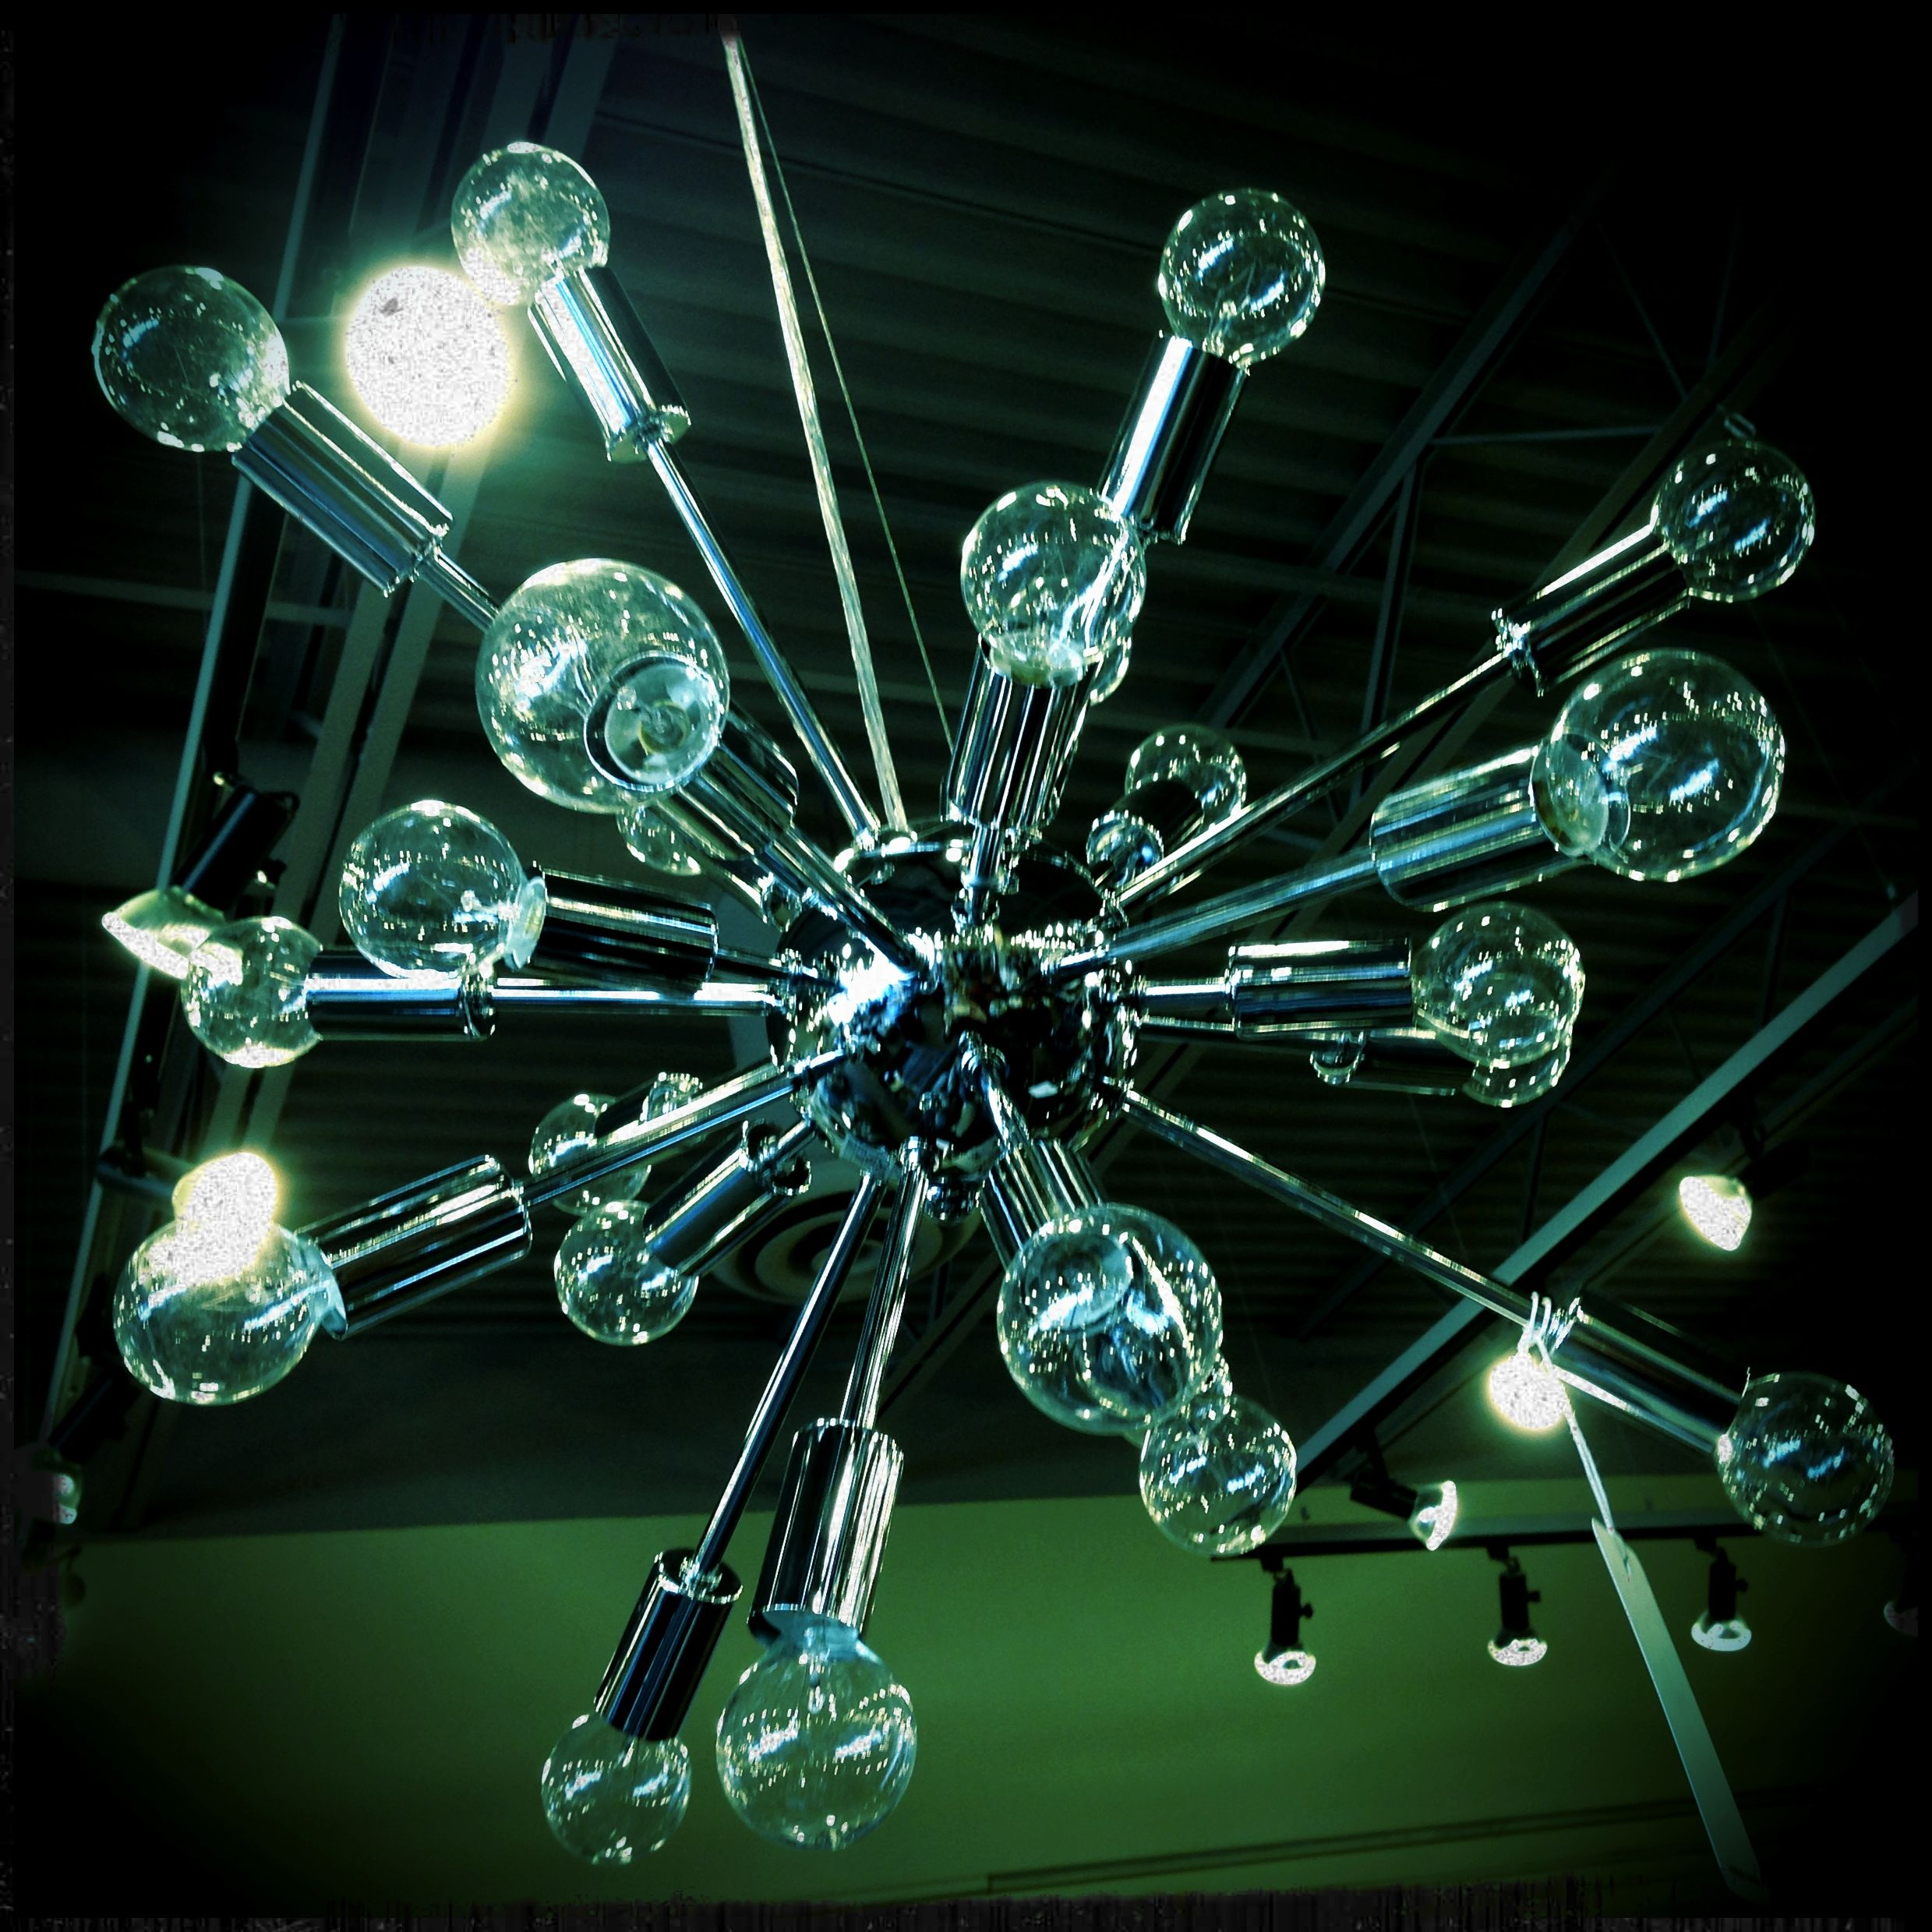 """Pulsar"" pendant light at Urban Barn. Spotted at Urban Barn on Regent in Winnipeg."